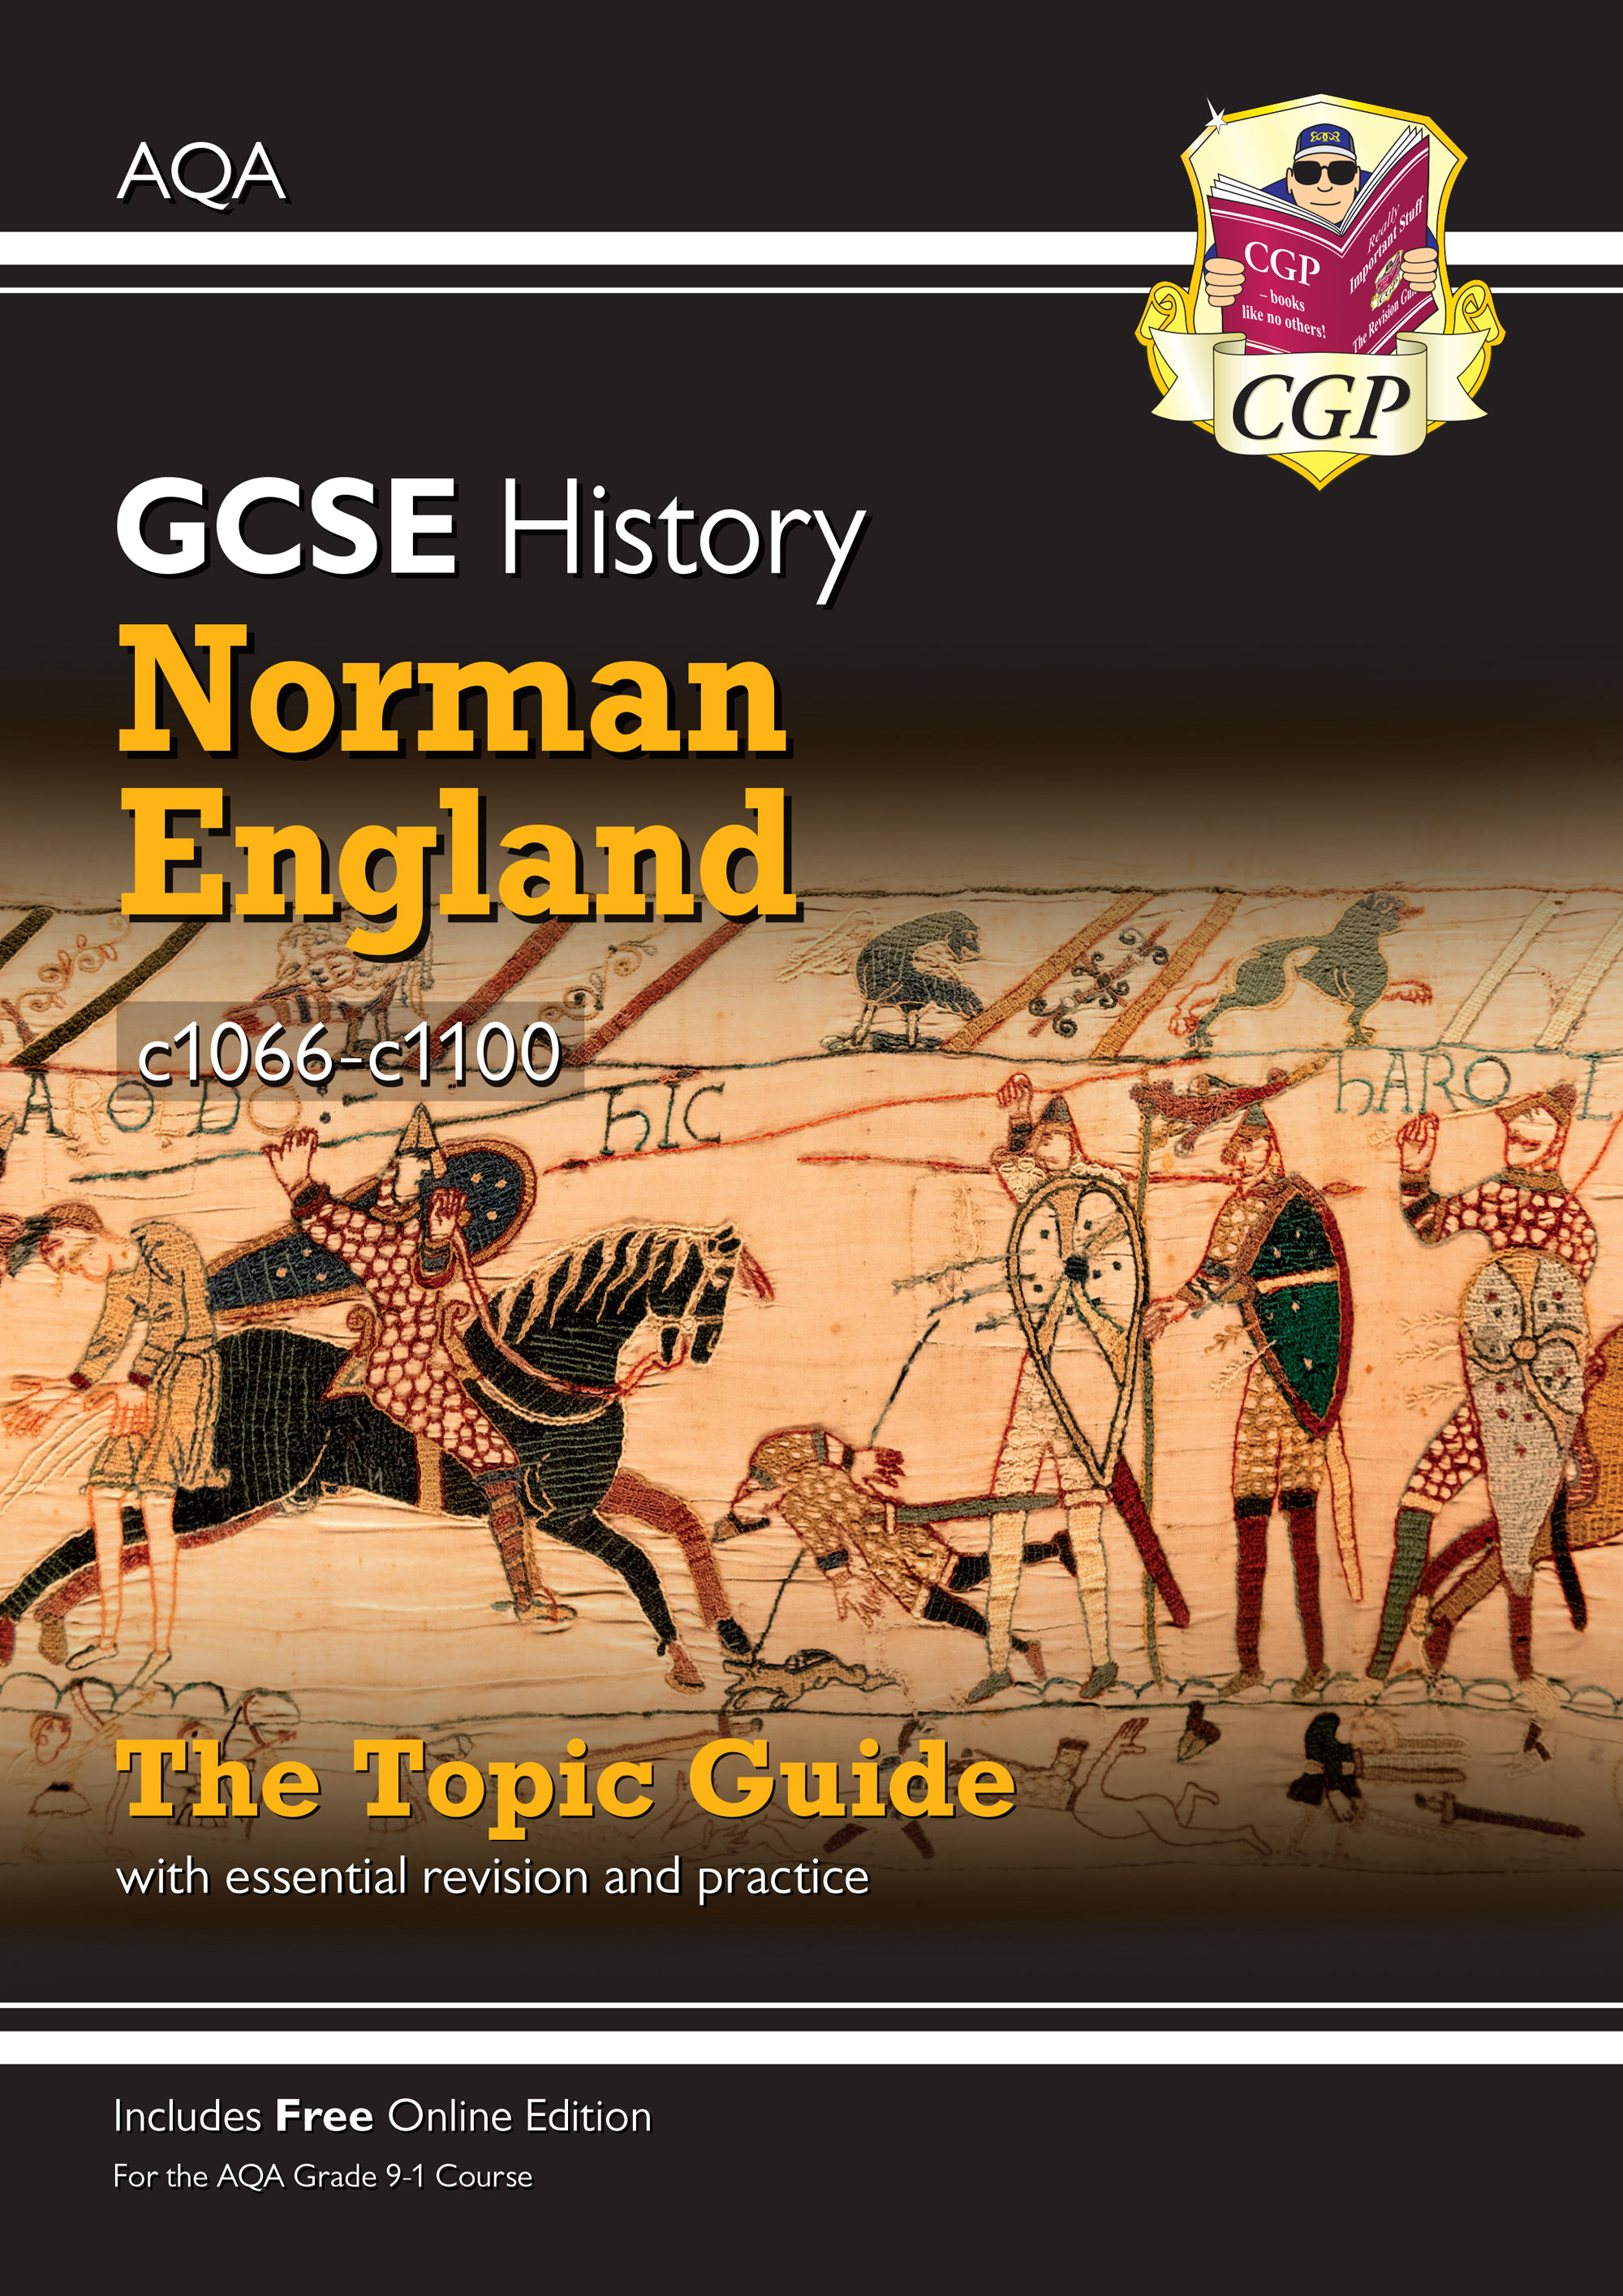 HANEO41 - New Grade 9-1 GCSE History AQA Topic Guide - Norman England, c1066-c1100